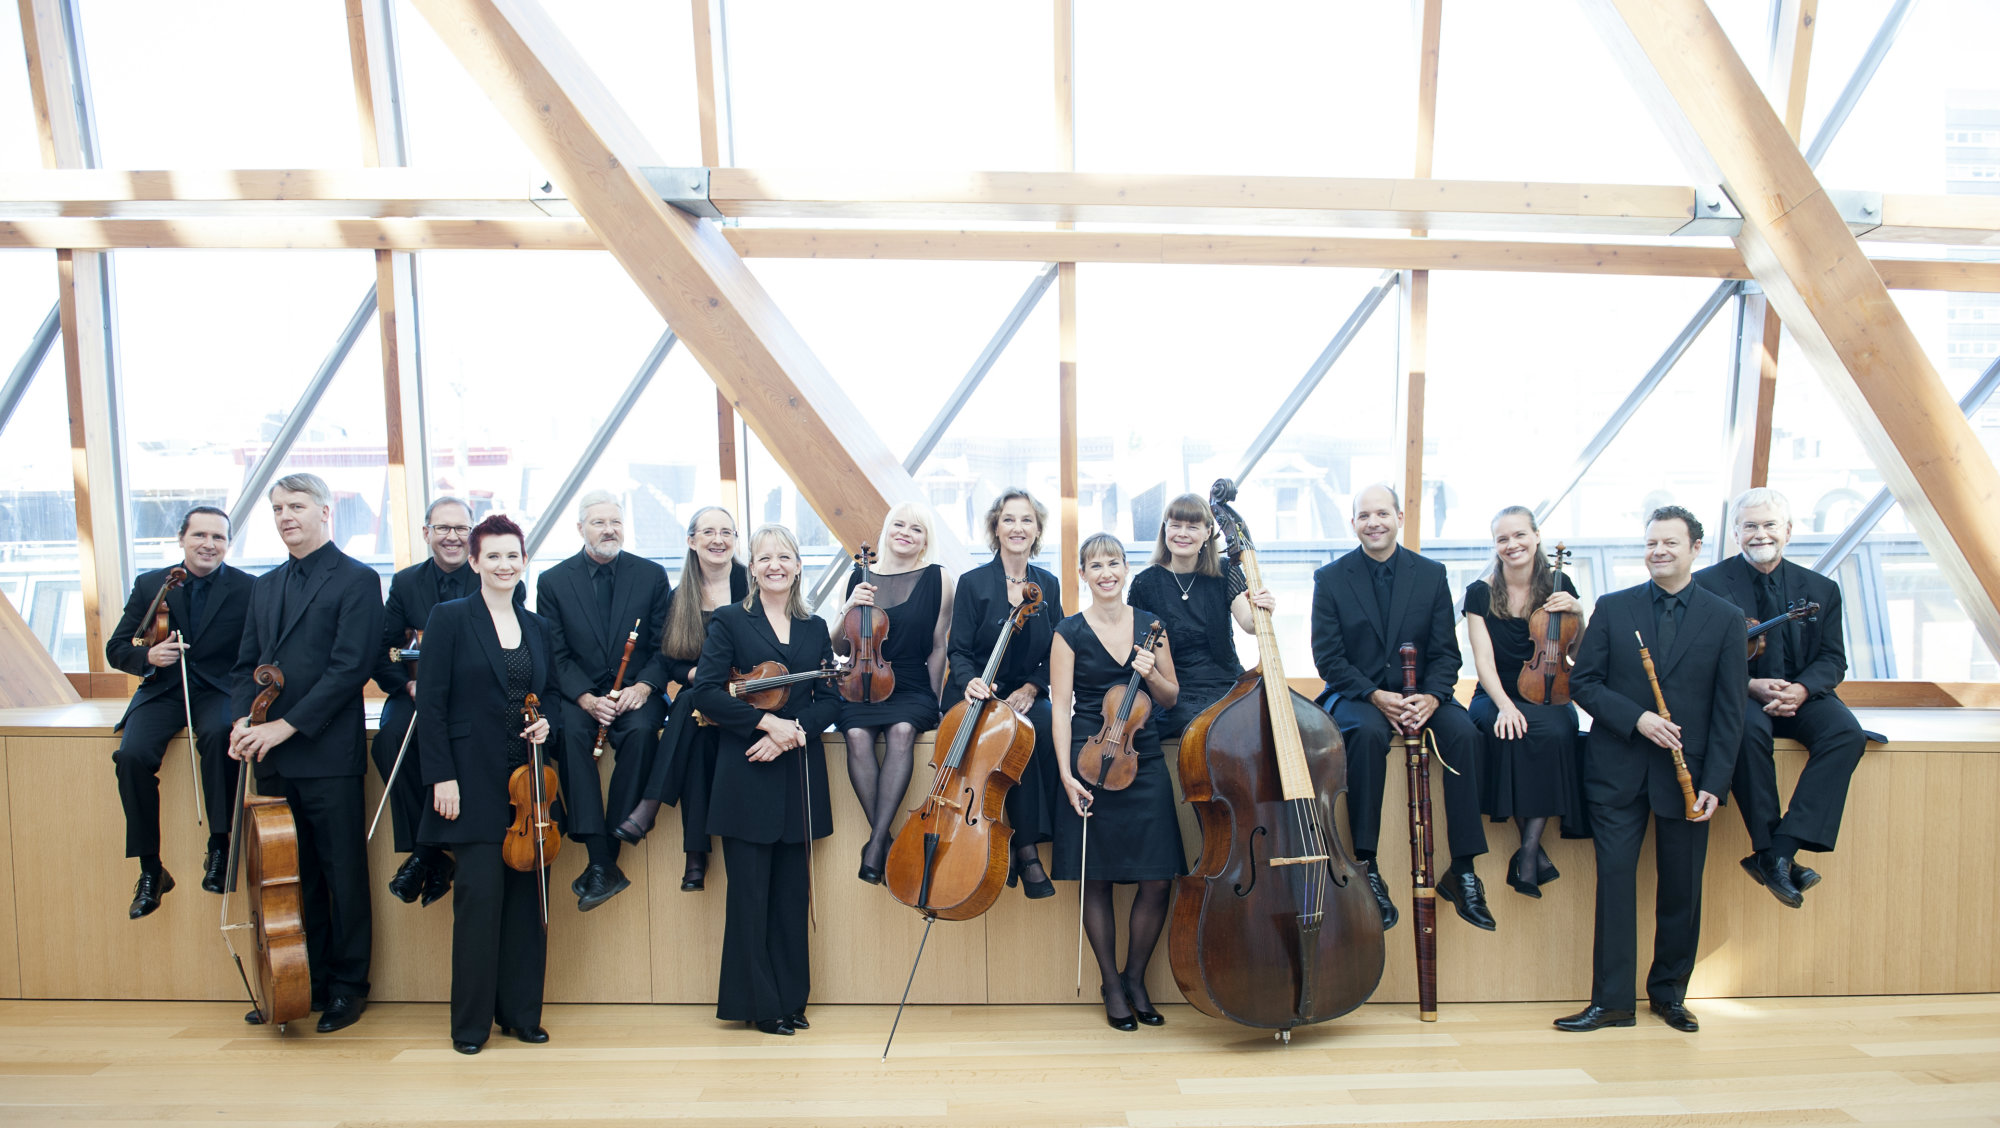 members of Tafelmusik Baroque Orchestra